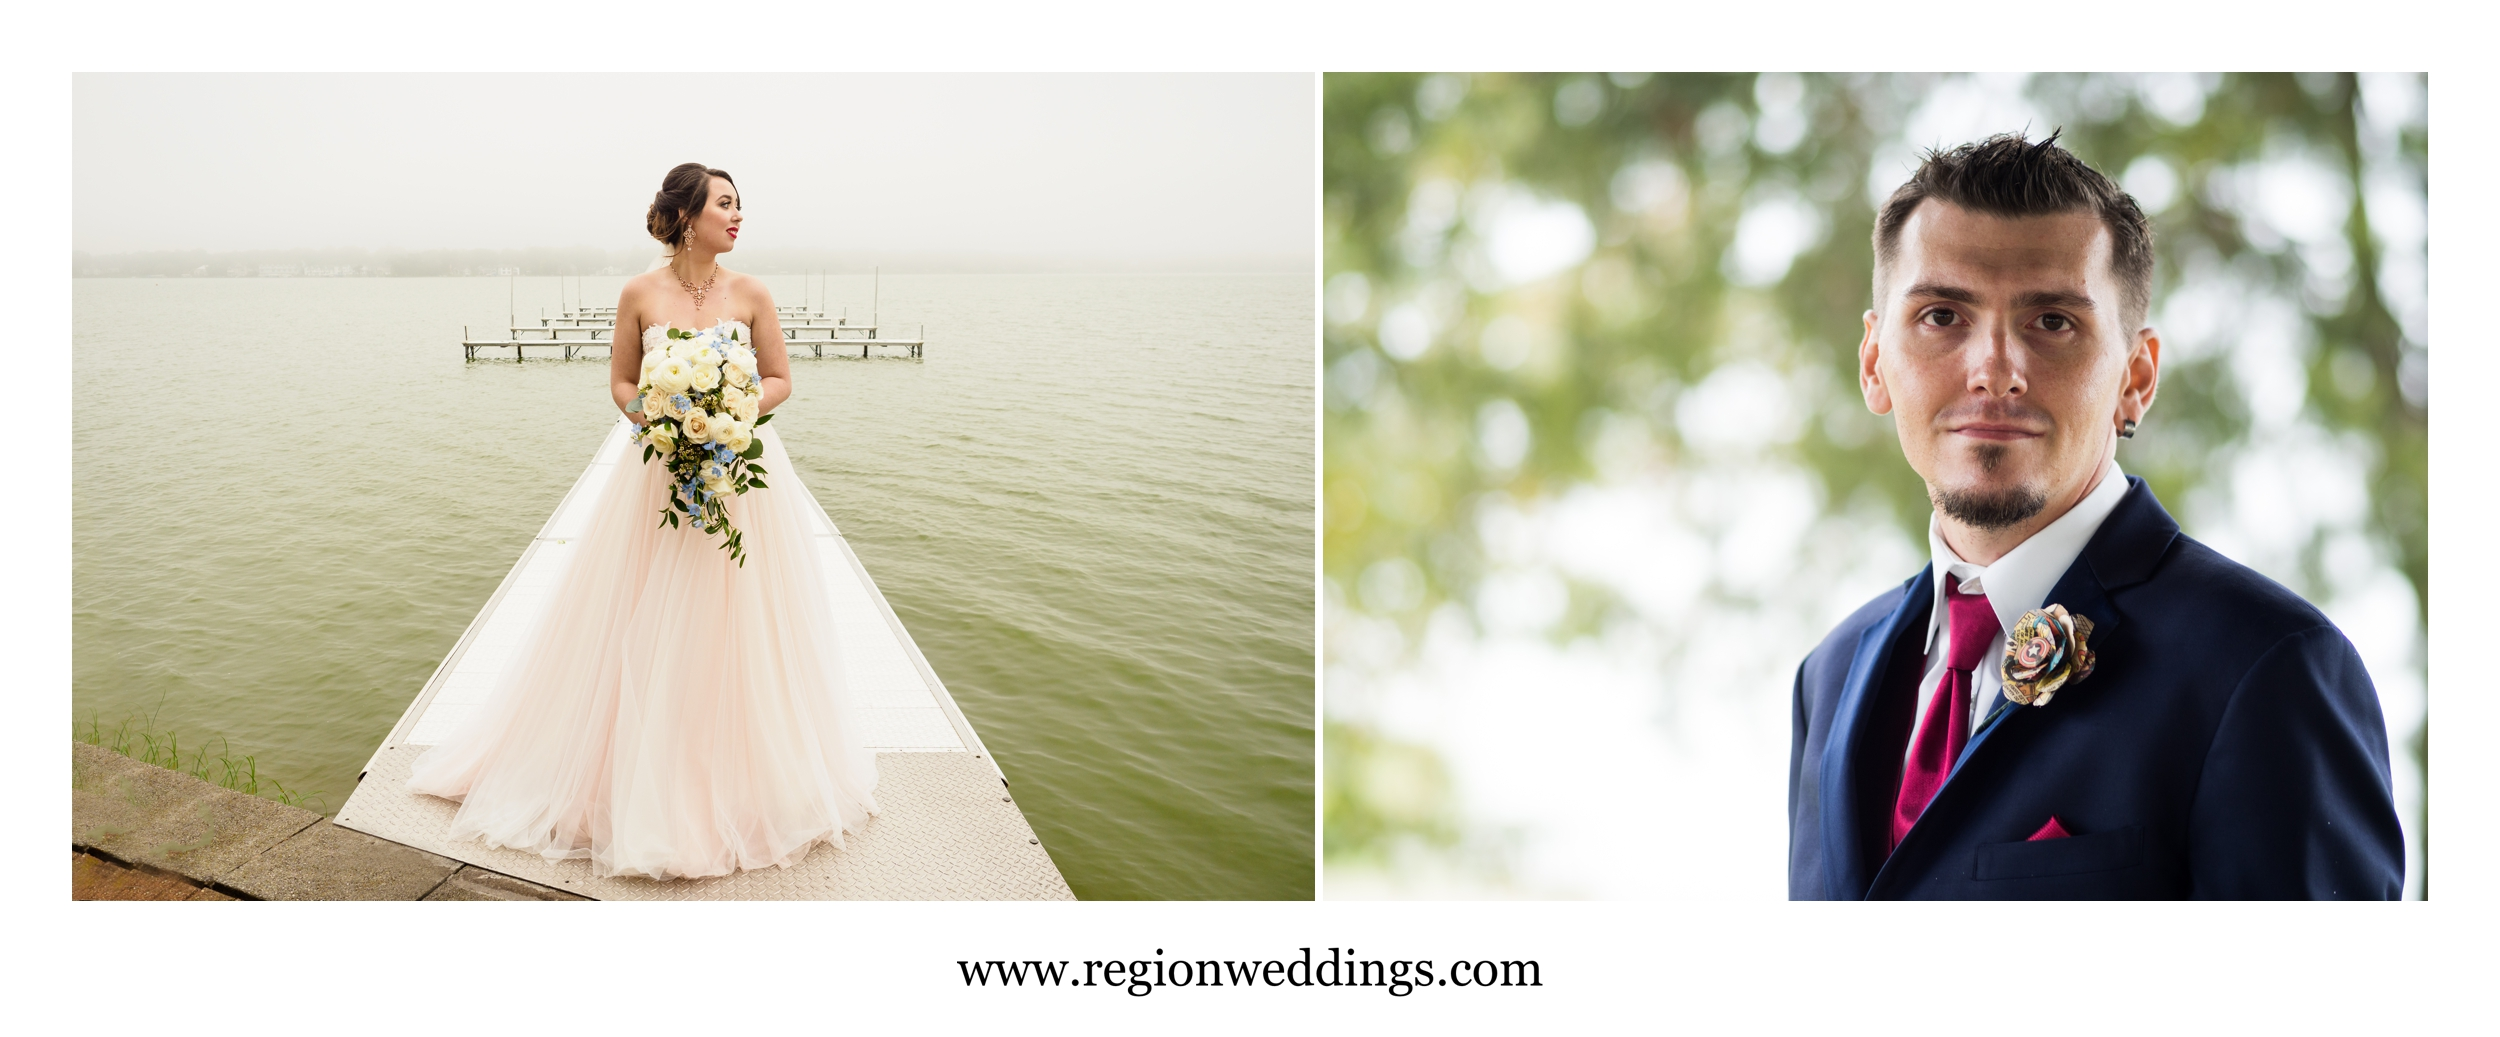 Bride and groom solo portraits at their Fall wedding.